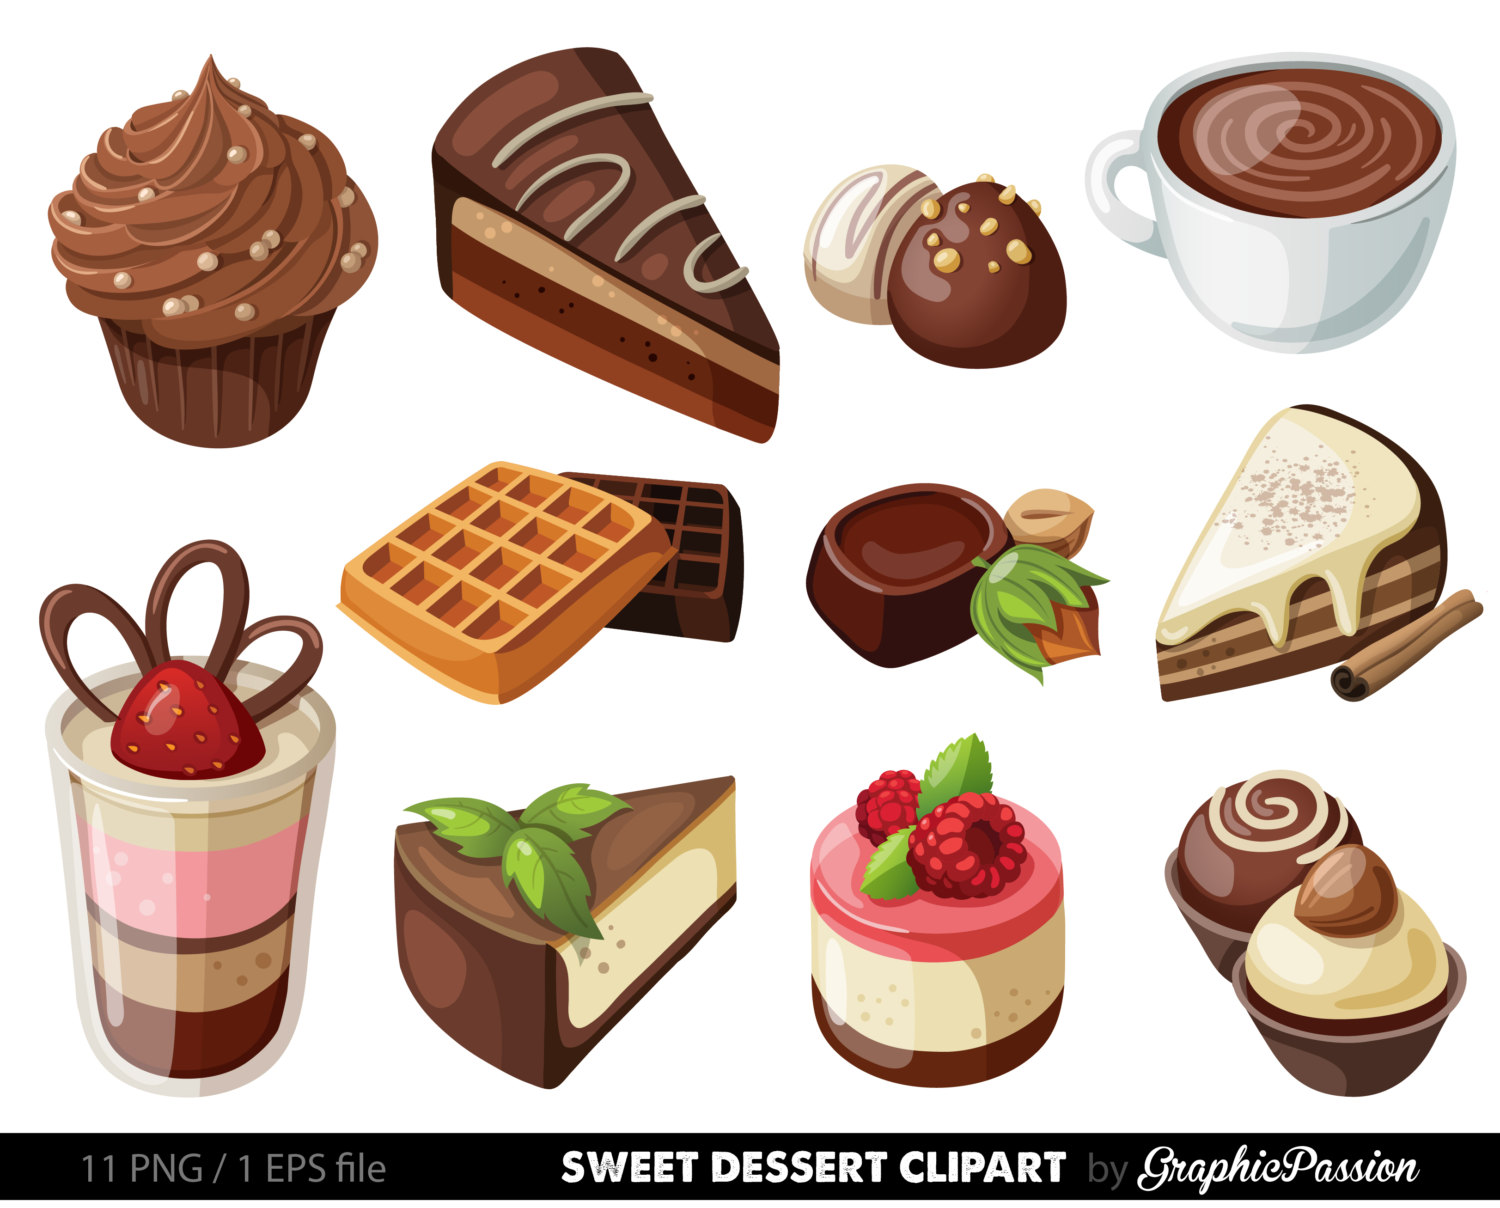 Pastry clipart sweet treat Panda dessert%20clipart Images Clipart Free